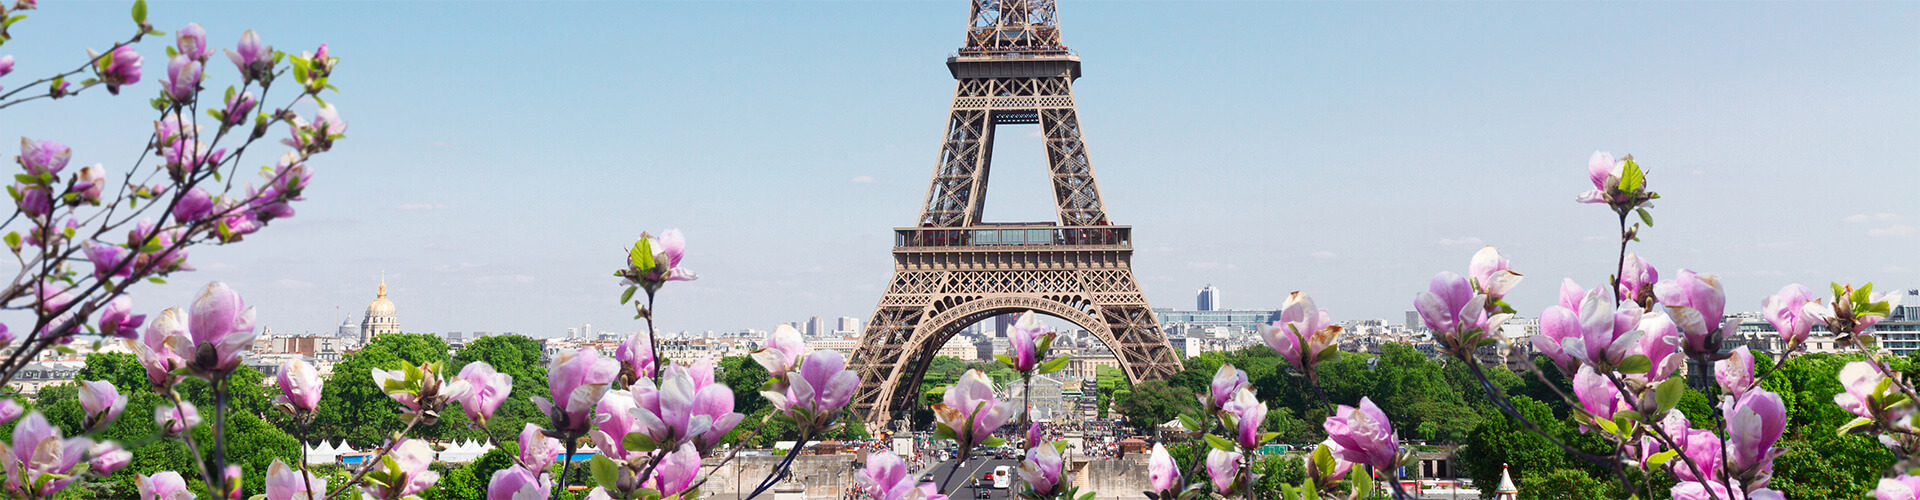 Paris in spring with the Eiffel Tower